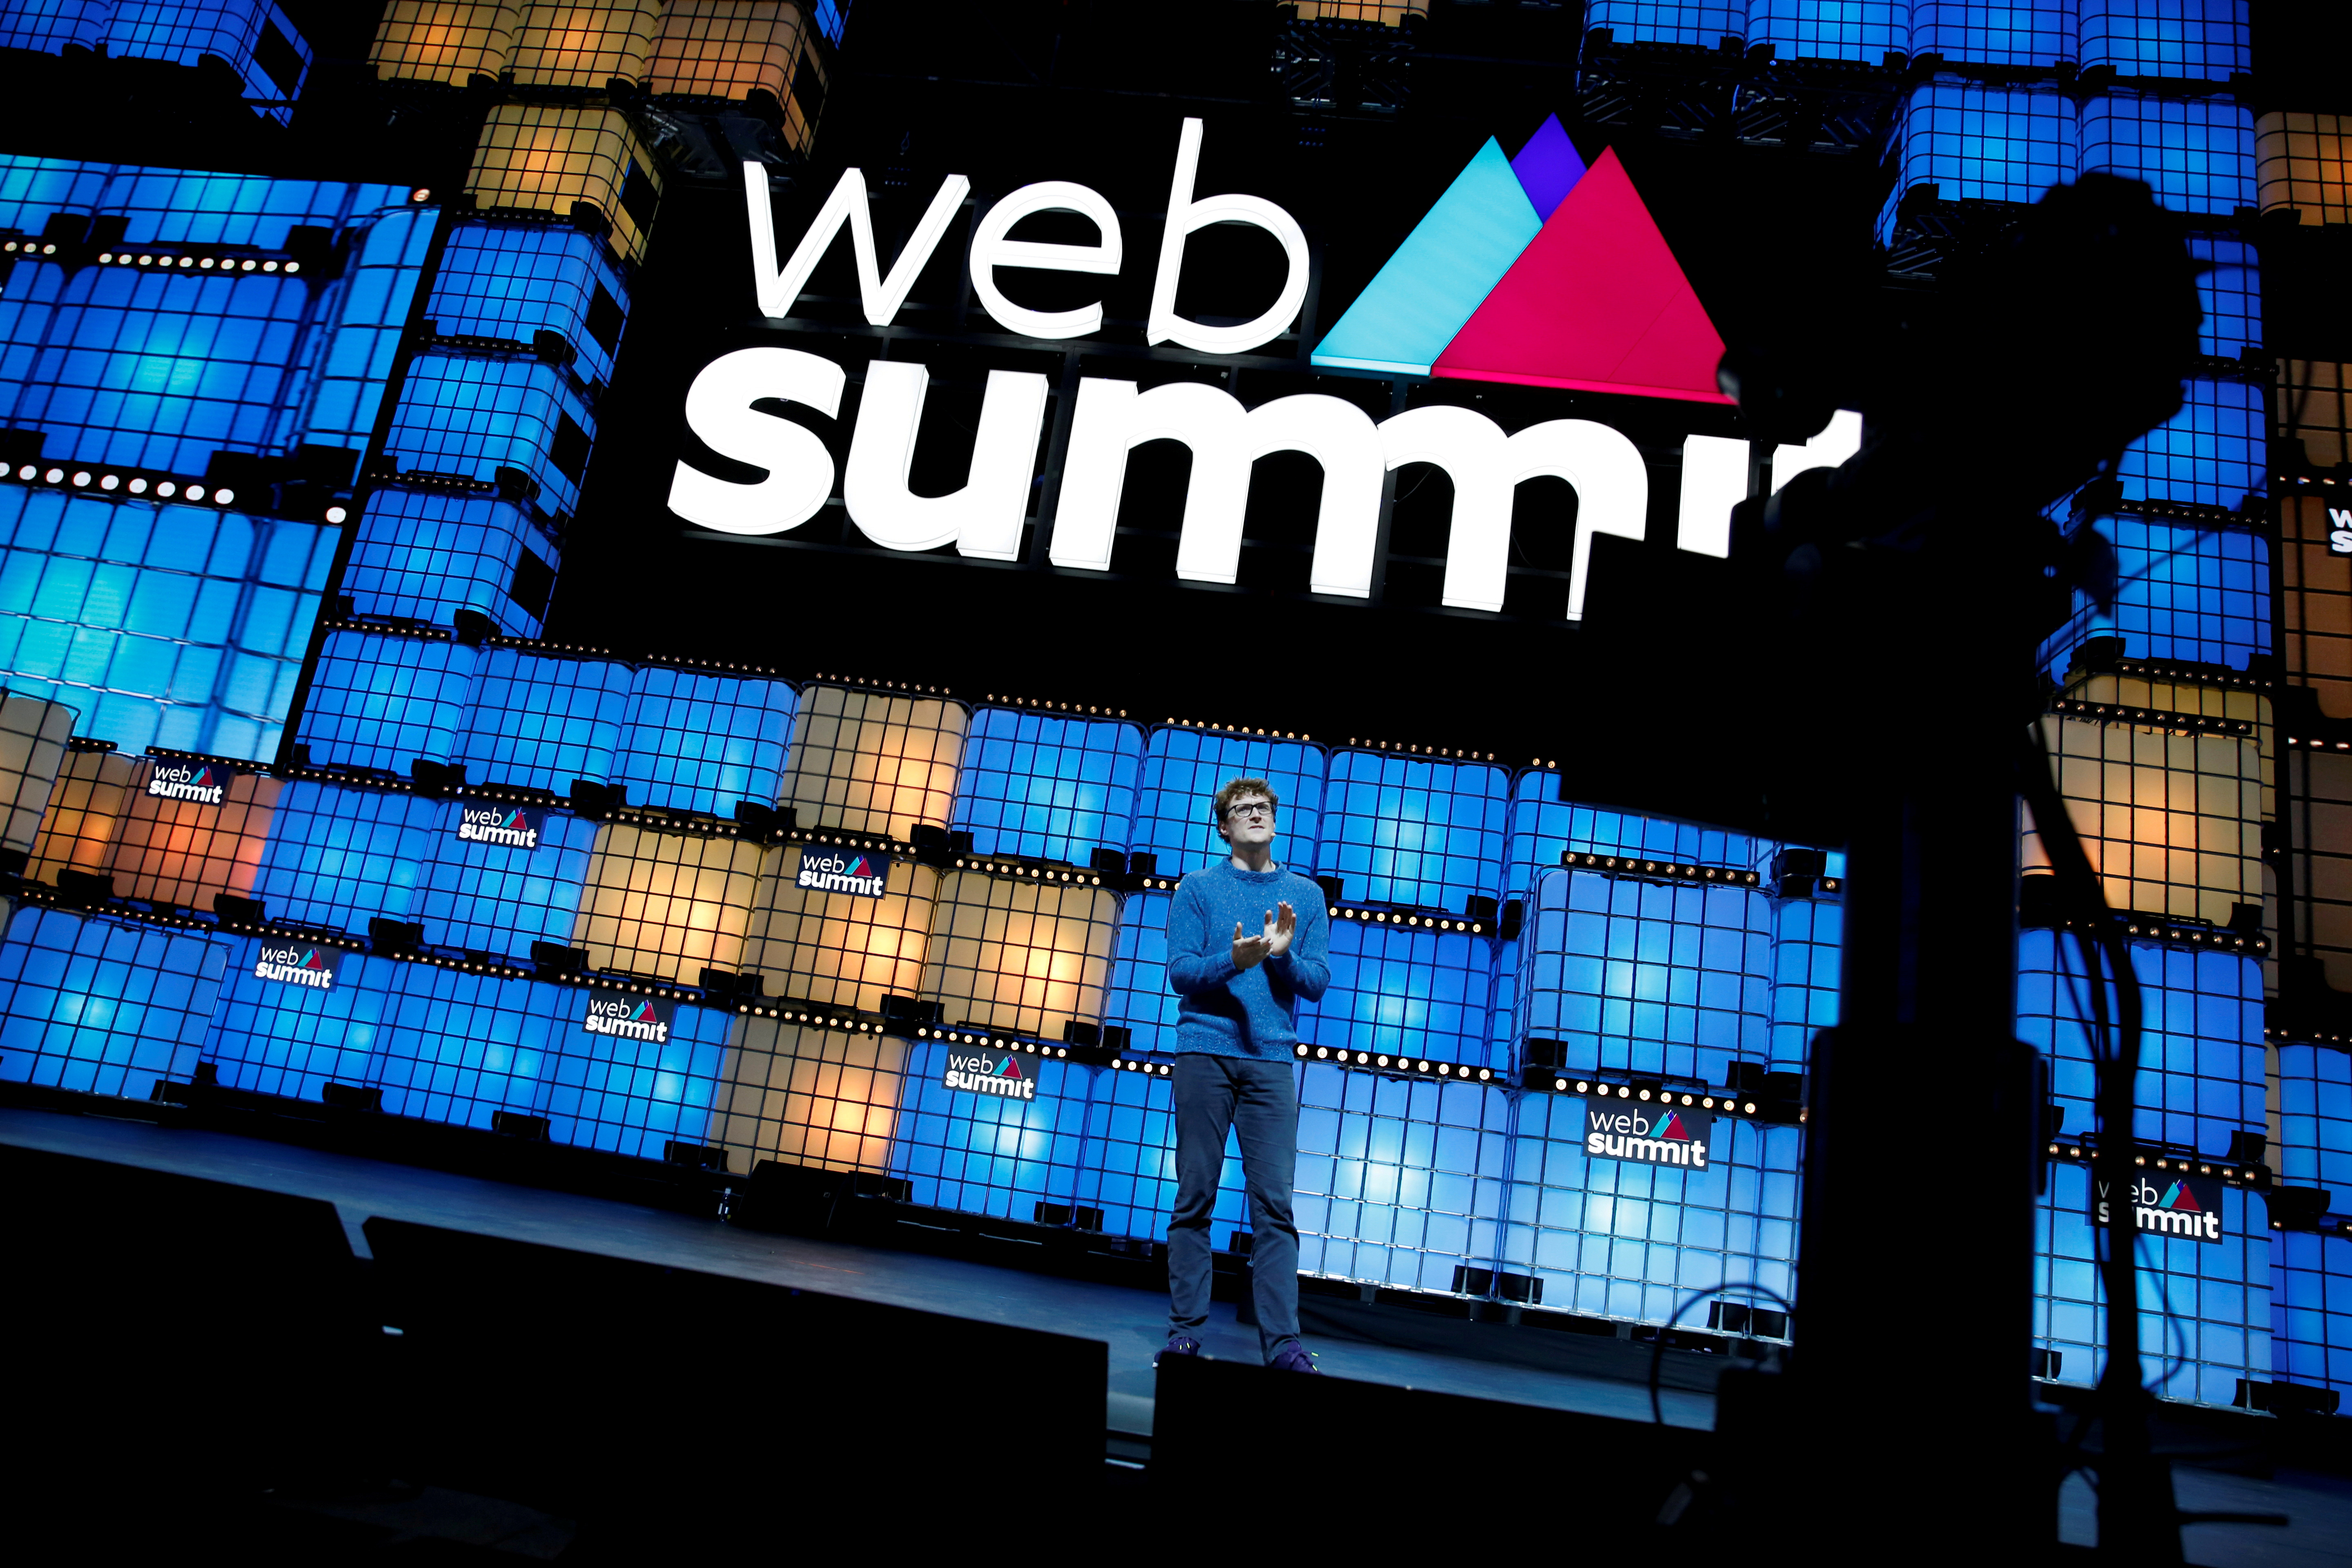 Web Summit founder Paddy Cosgrave speaks at the closing ceremony of the Web Summit, in Lisbon, Portugal, November 7, 2019. REUTERS/Pedro Nunes/File Photo